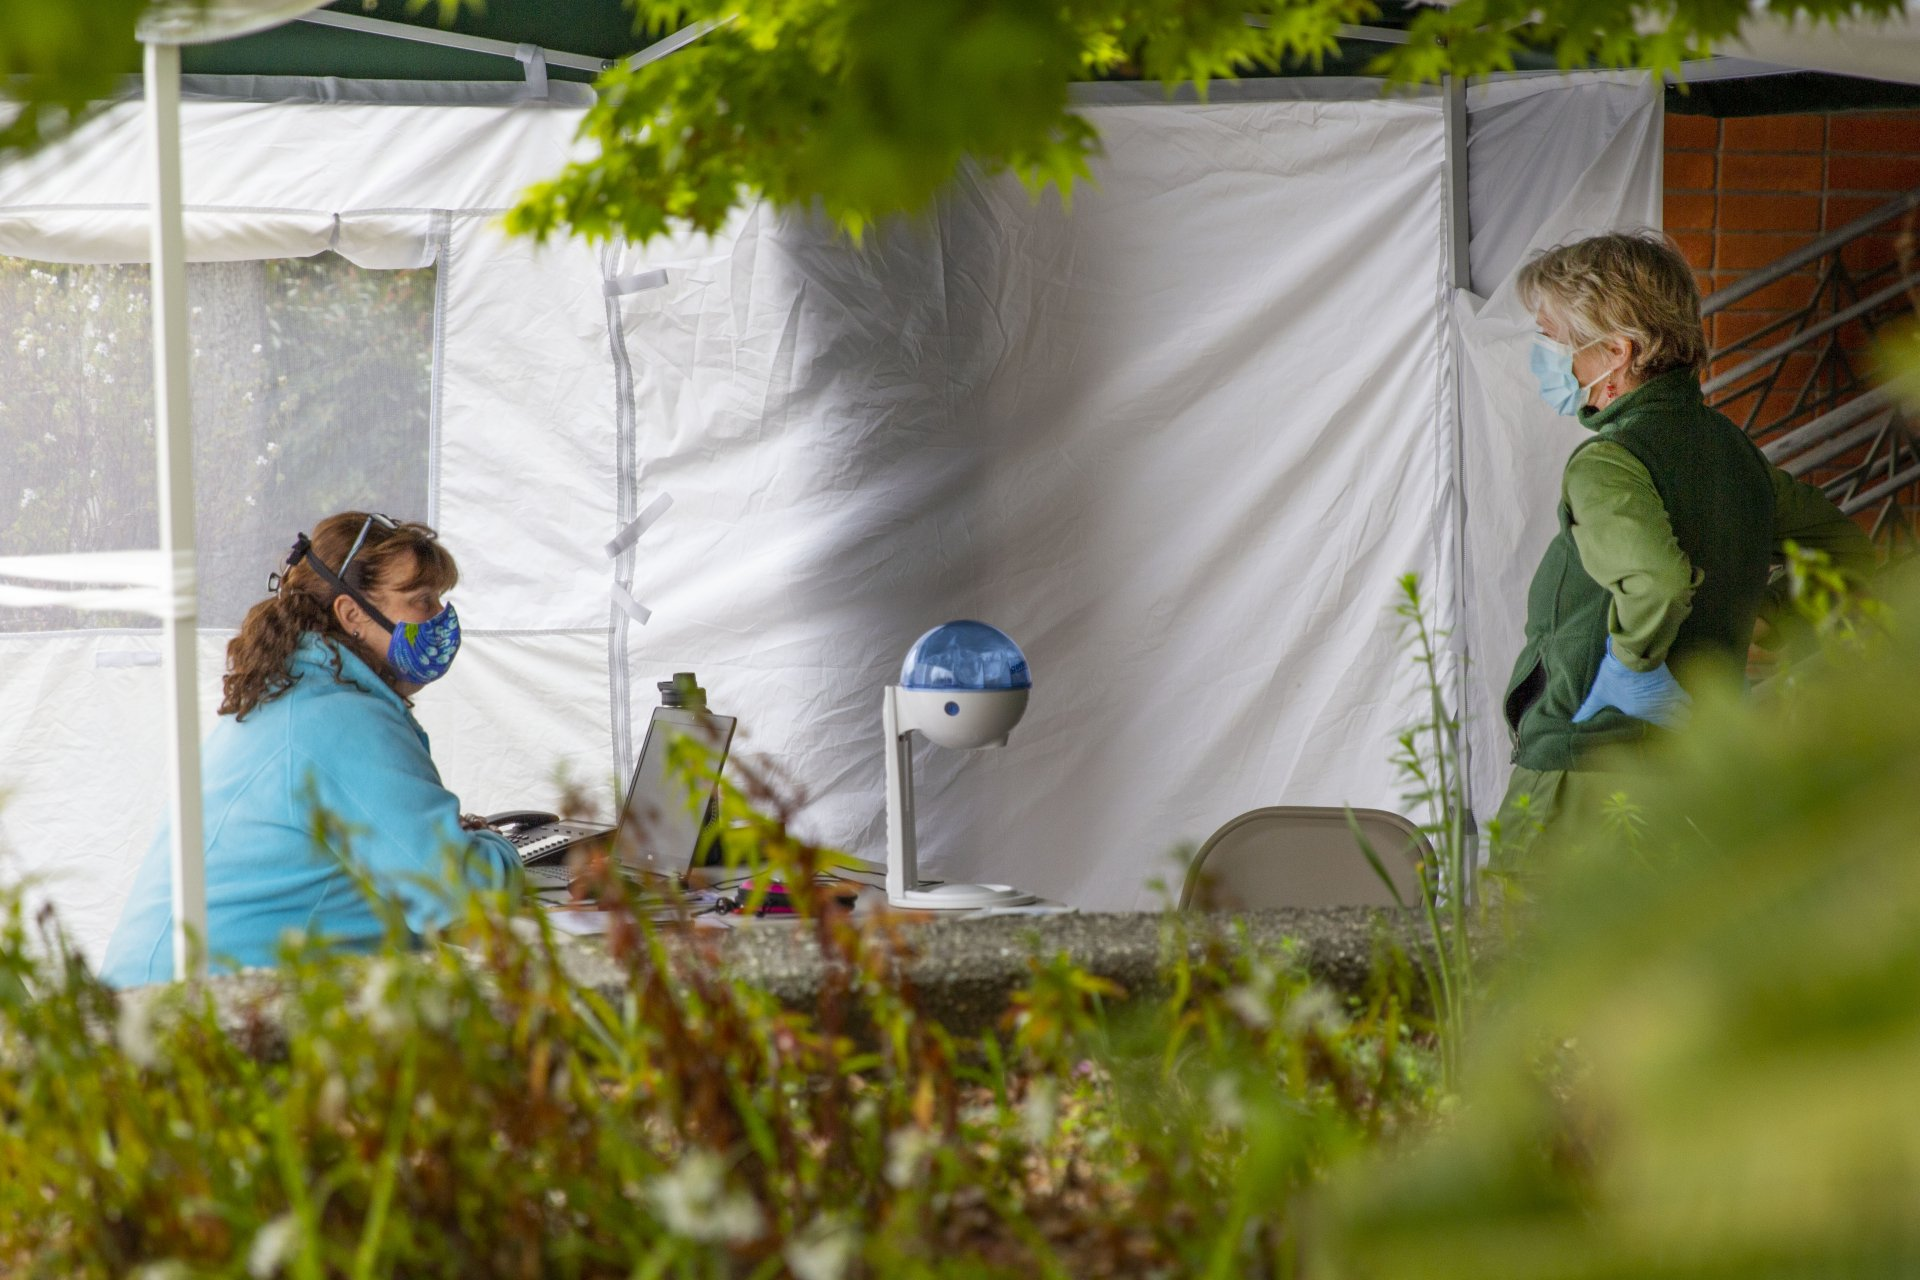 Chris Mis, a registered nurse, and Karin Rodamer, a medical assistant who works at the Student Health Center, talk under a tent outside during the COVID-19 pandemic on April 17. | Photo by Thomas Lal